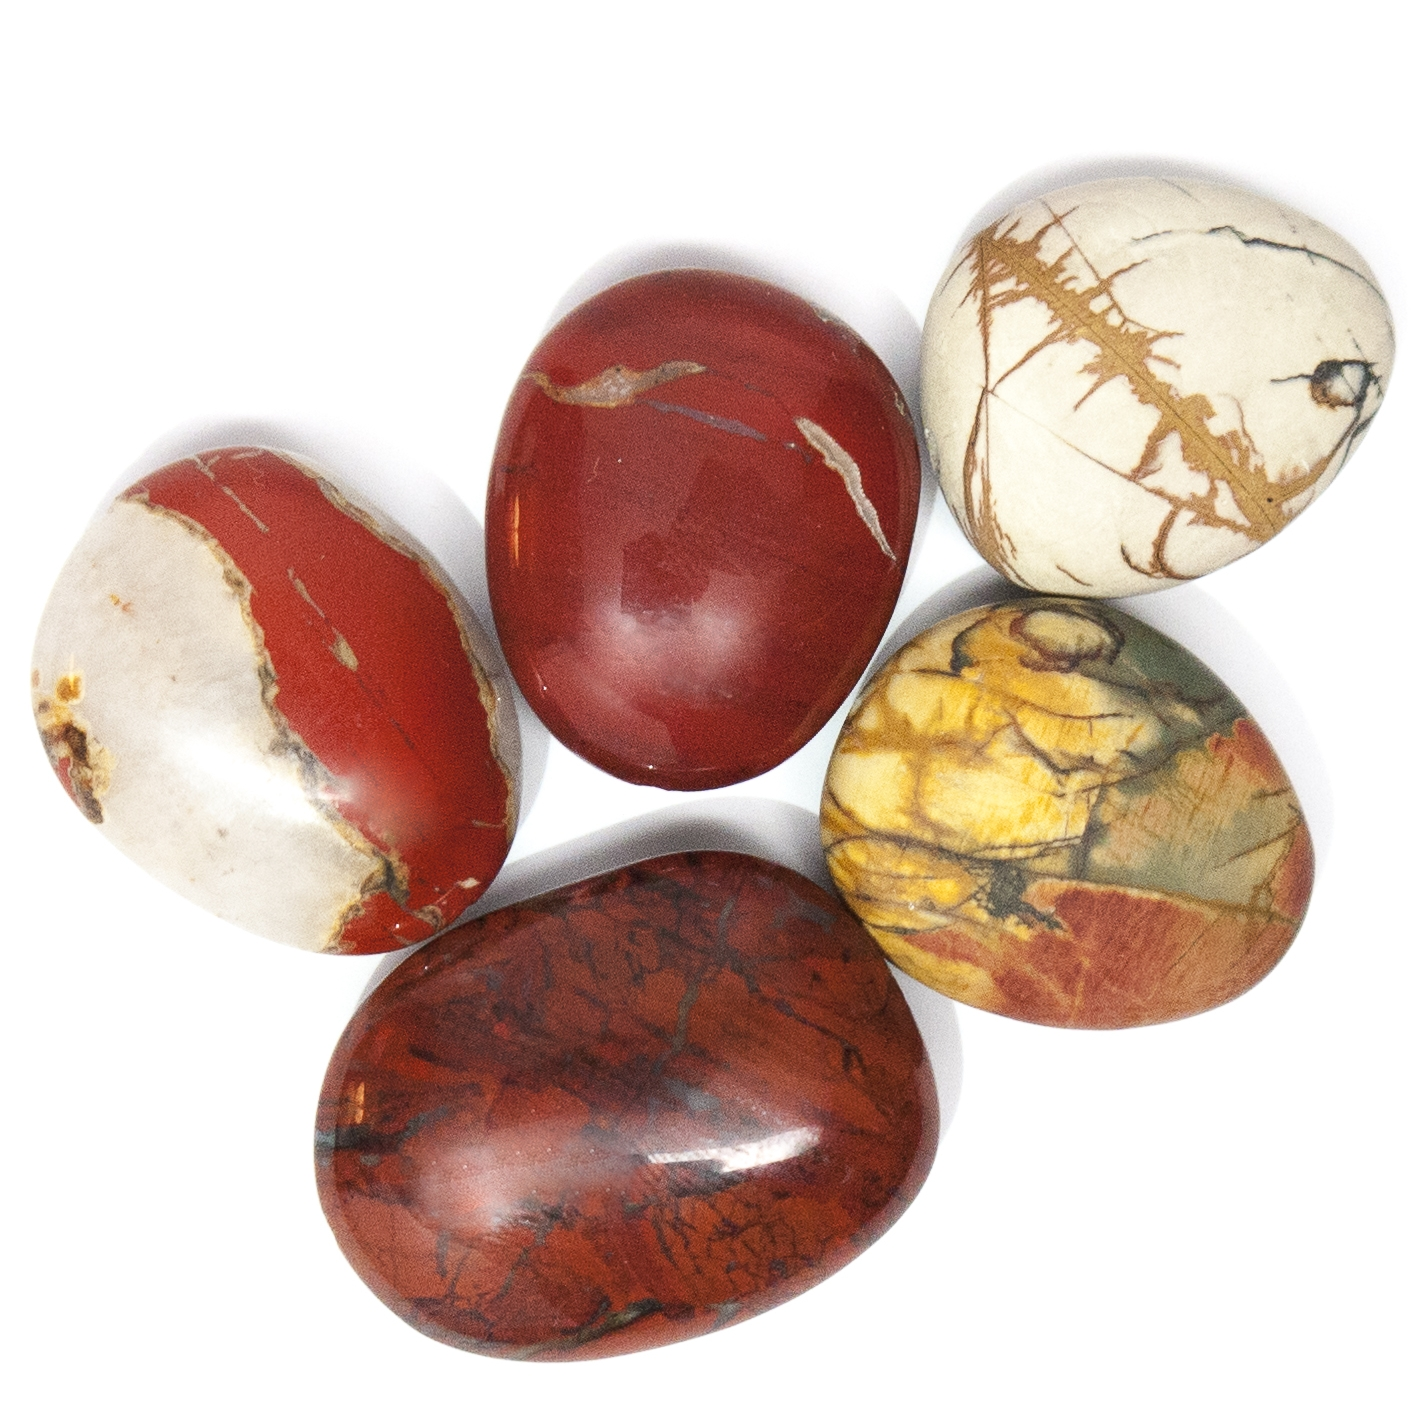 """J A S P E R - Jasper is part of the Chalcedony family and, like Agate, has many colors, patterns, and forms. We use Red Jasper (a rusty stone with black or white veins) and a variation we like to call Picasso Jasper as its coloring is reminiscent of Pablo Picasso's cubist palette.  In Native American culture, Jasper is traditionally used for rain making. Also known as the """"Supreme Nurturer"""", Jasper is a grounding stone which promotes stability and awareness.  Jasper is mined in the U.S.out West in Wyoming, Montana, and Utah."""